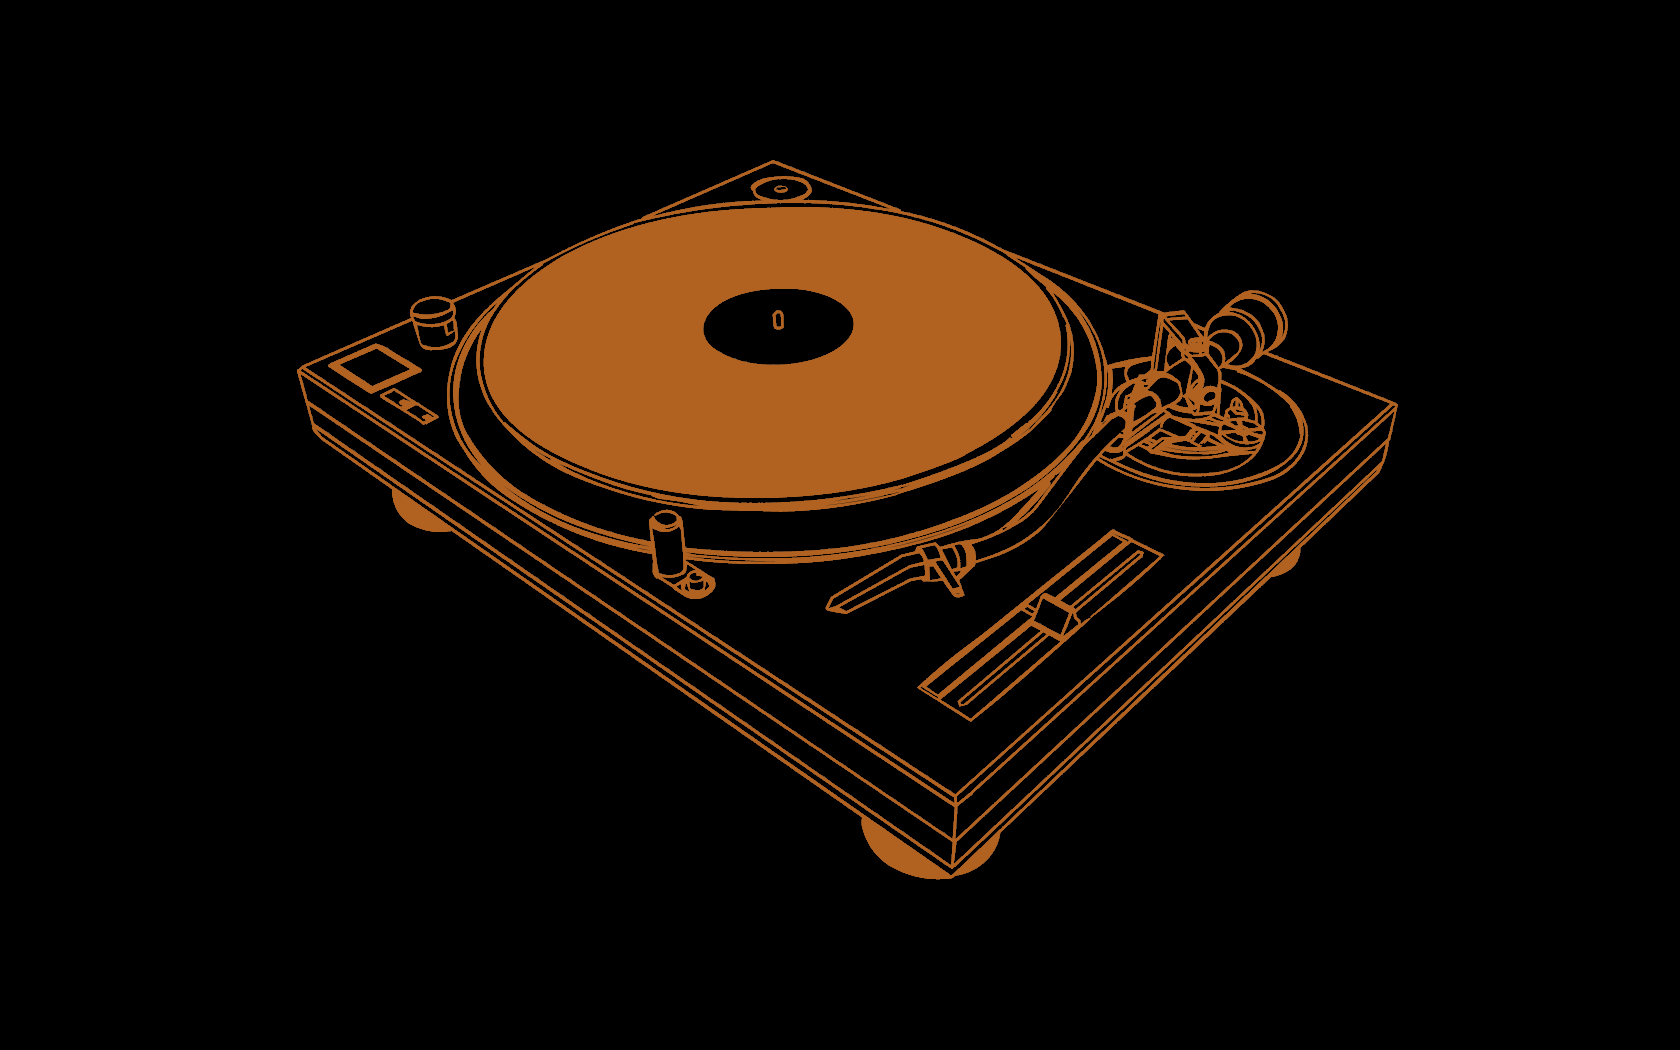 Turntable turntables wallpaper - (#173385) - High Quality and . - Turntable HD PNG